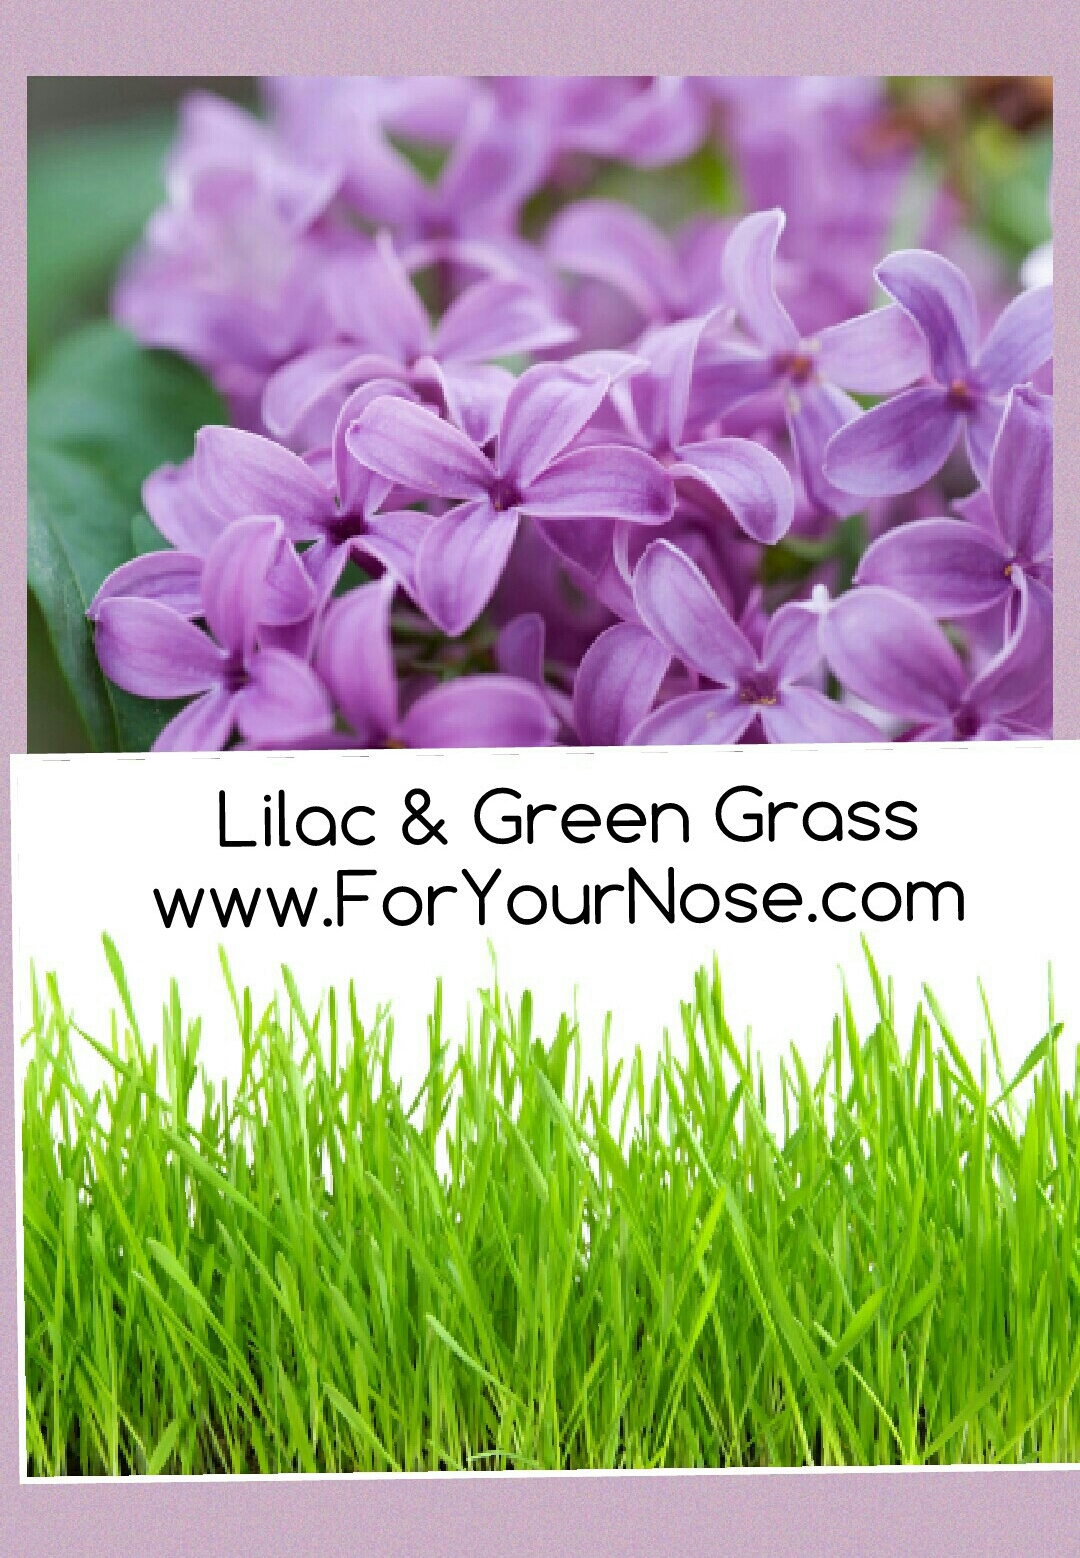 Lilac & Green Grass fragrance